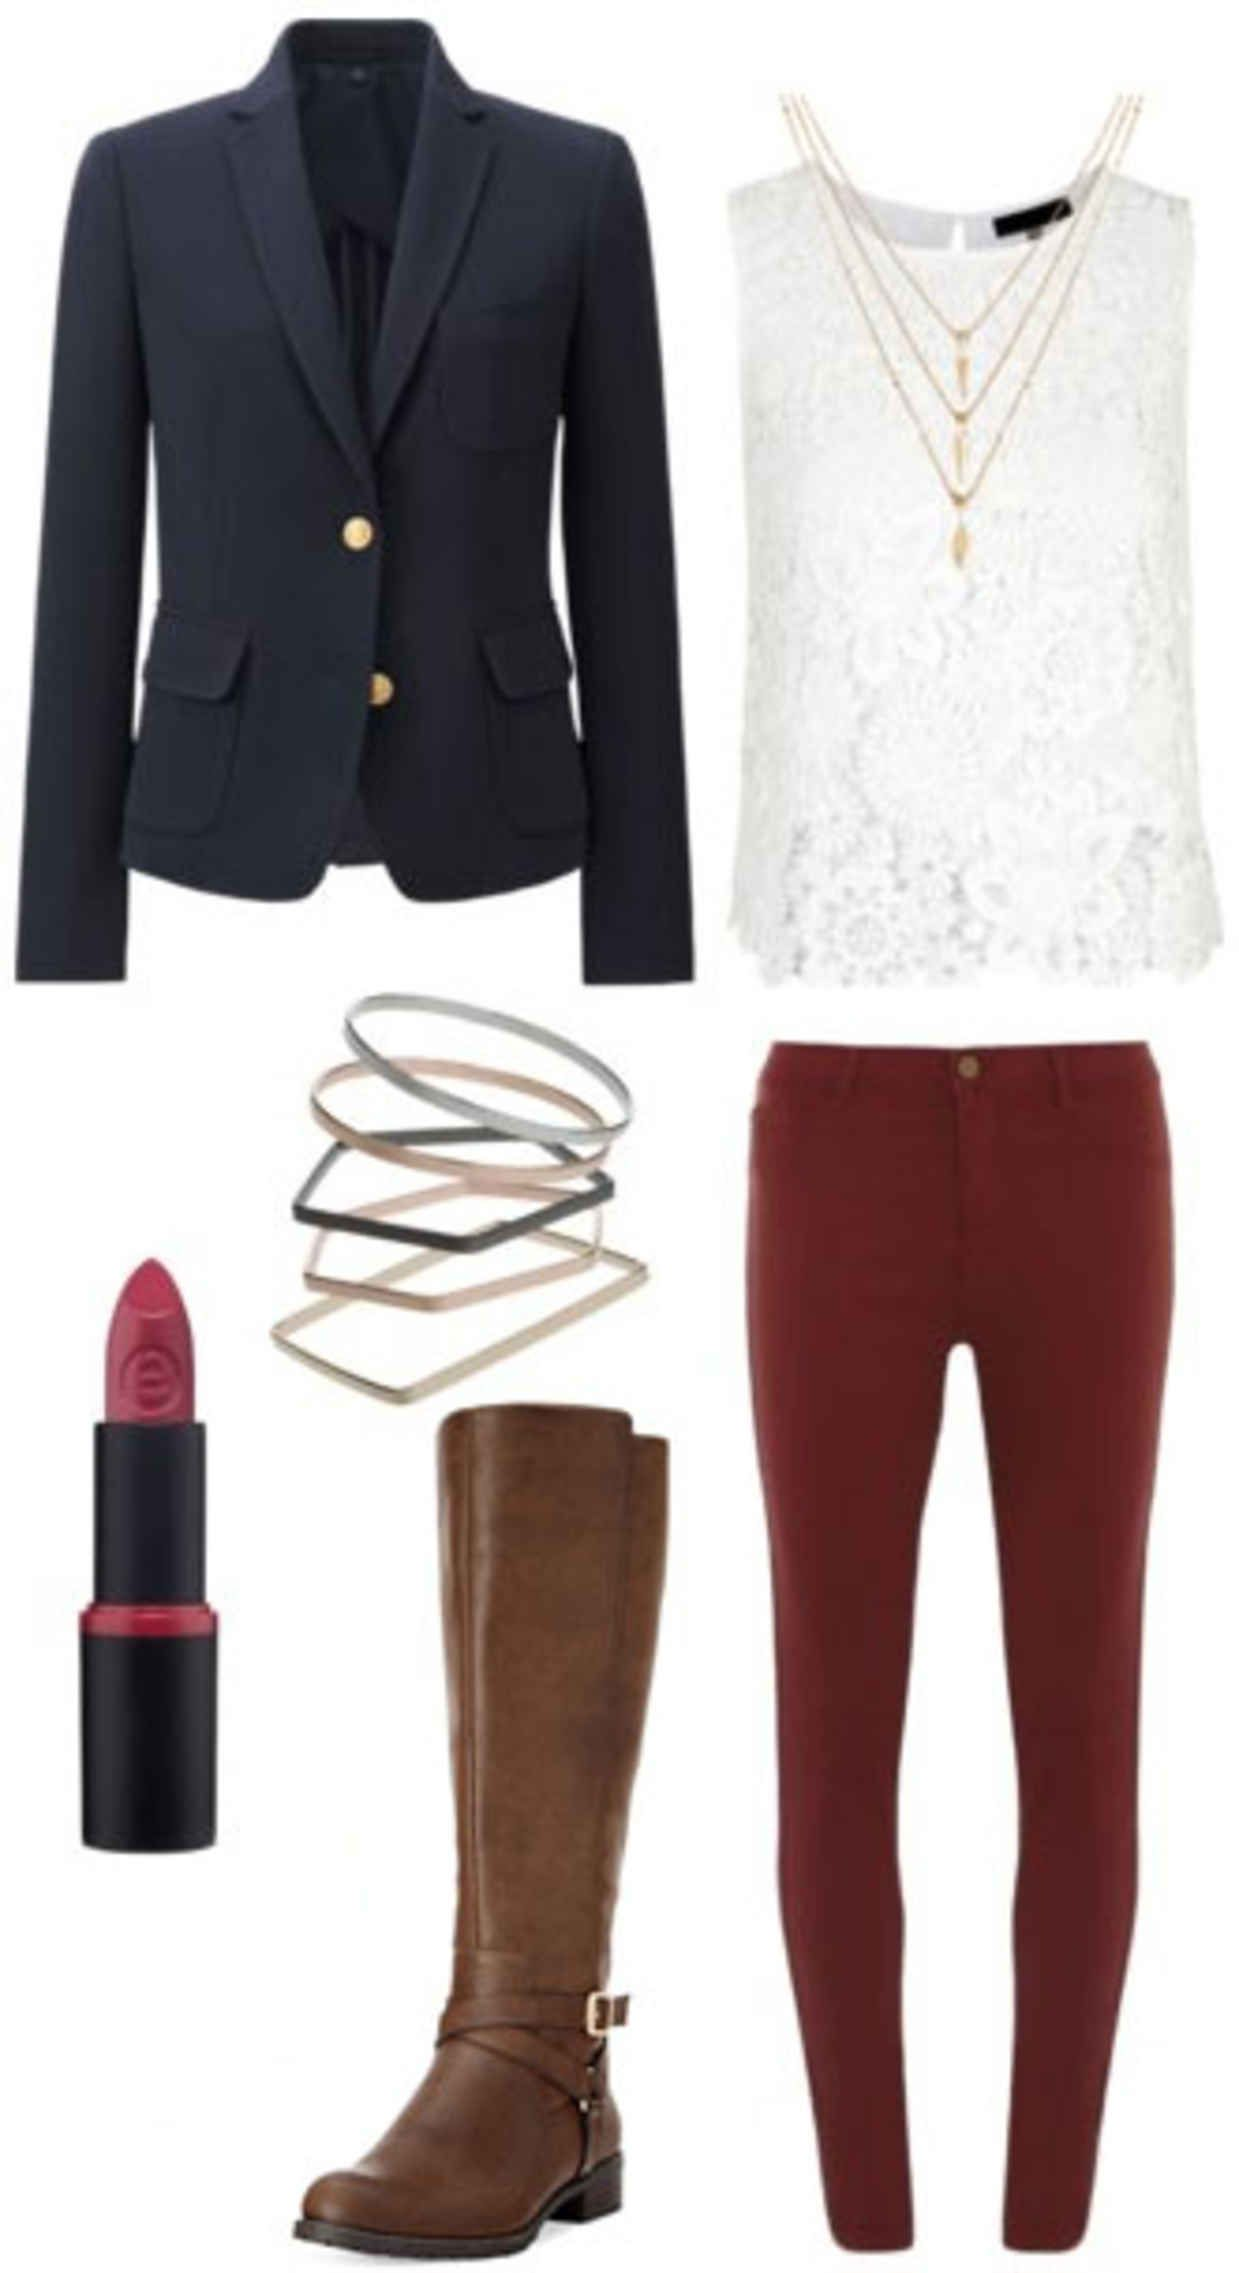 Book-Inspired Fashion: The Thirteenth Tale - College Fashion